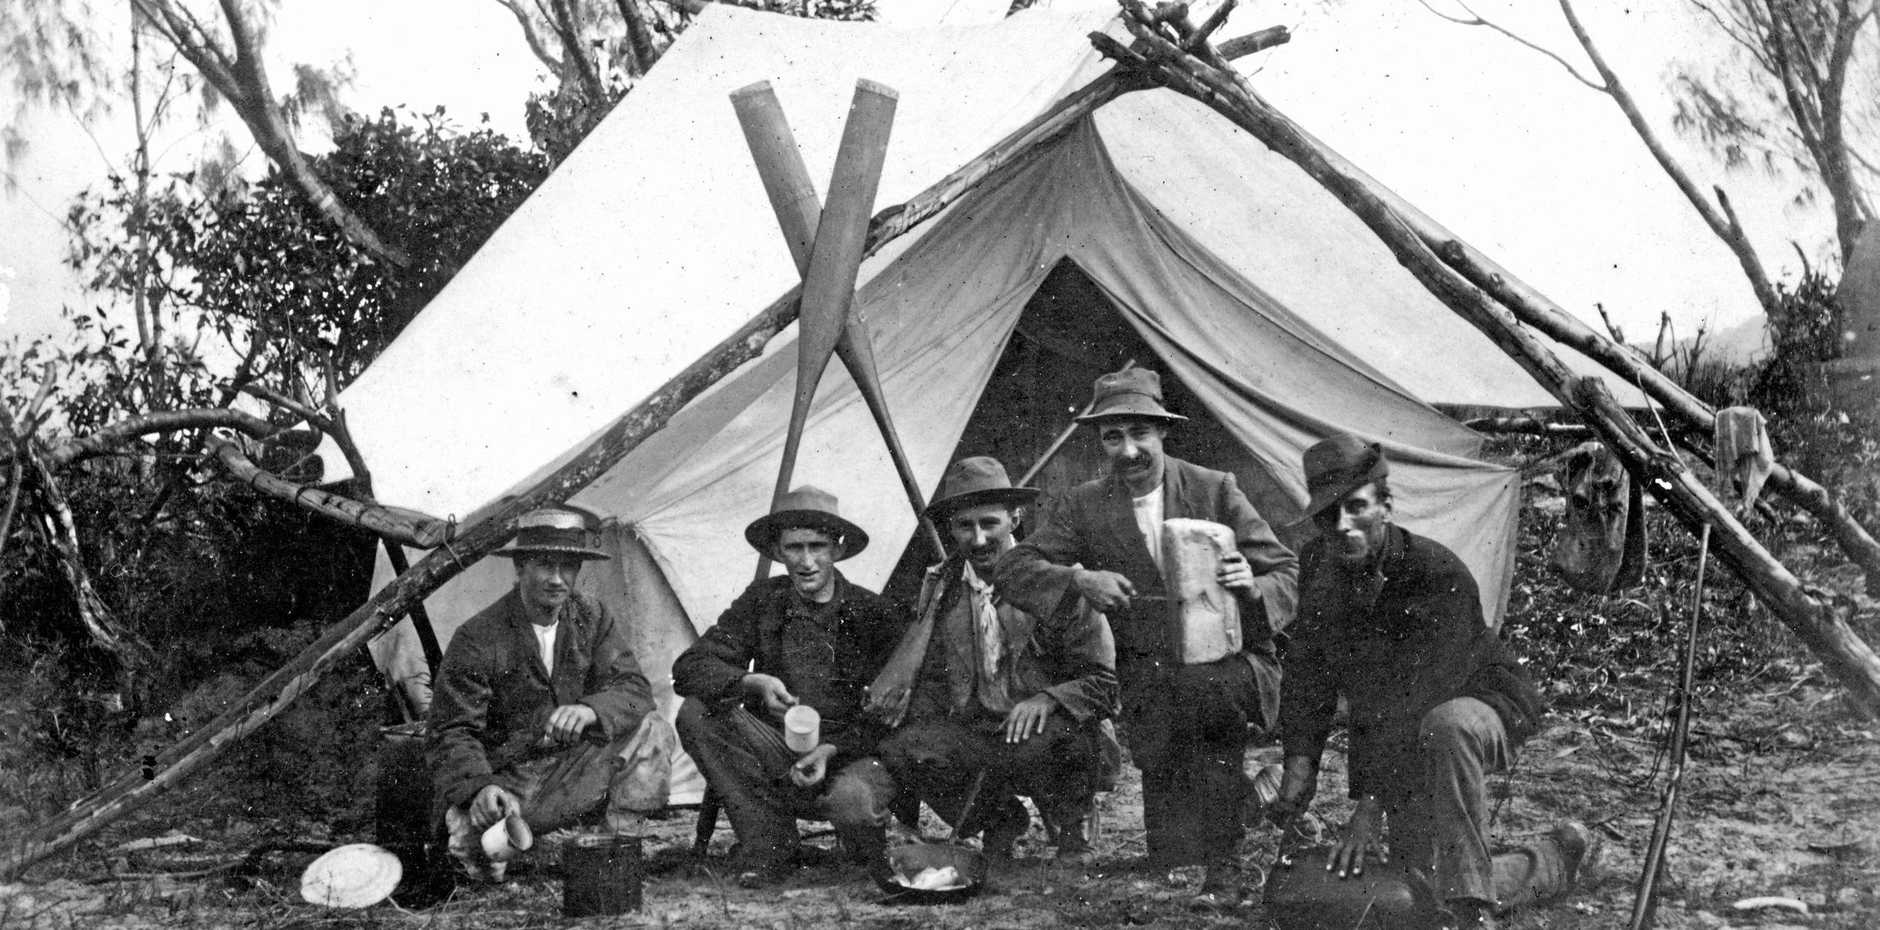 Campers in front of their tent on Pincushion Island at the mouth of the Maroochy River, Maroochydore, in 1906.